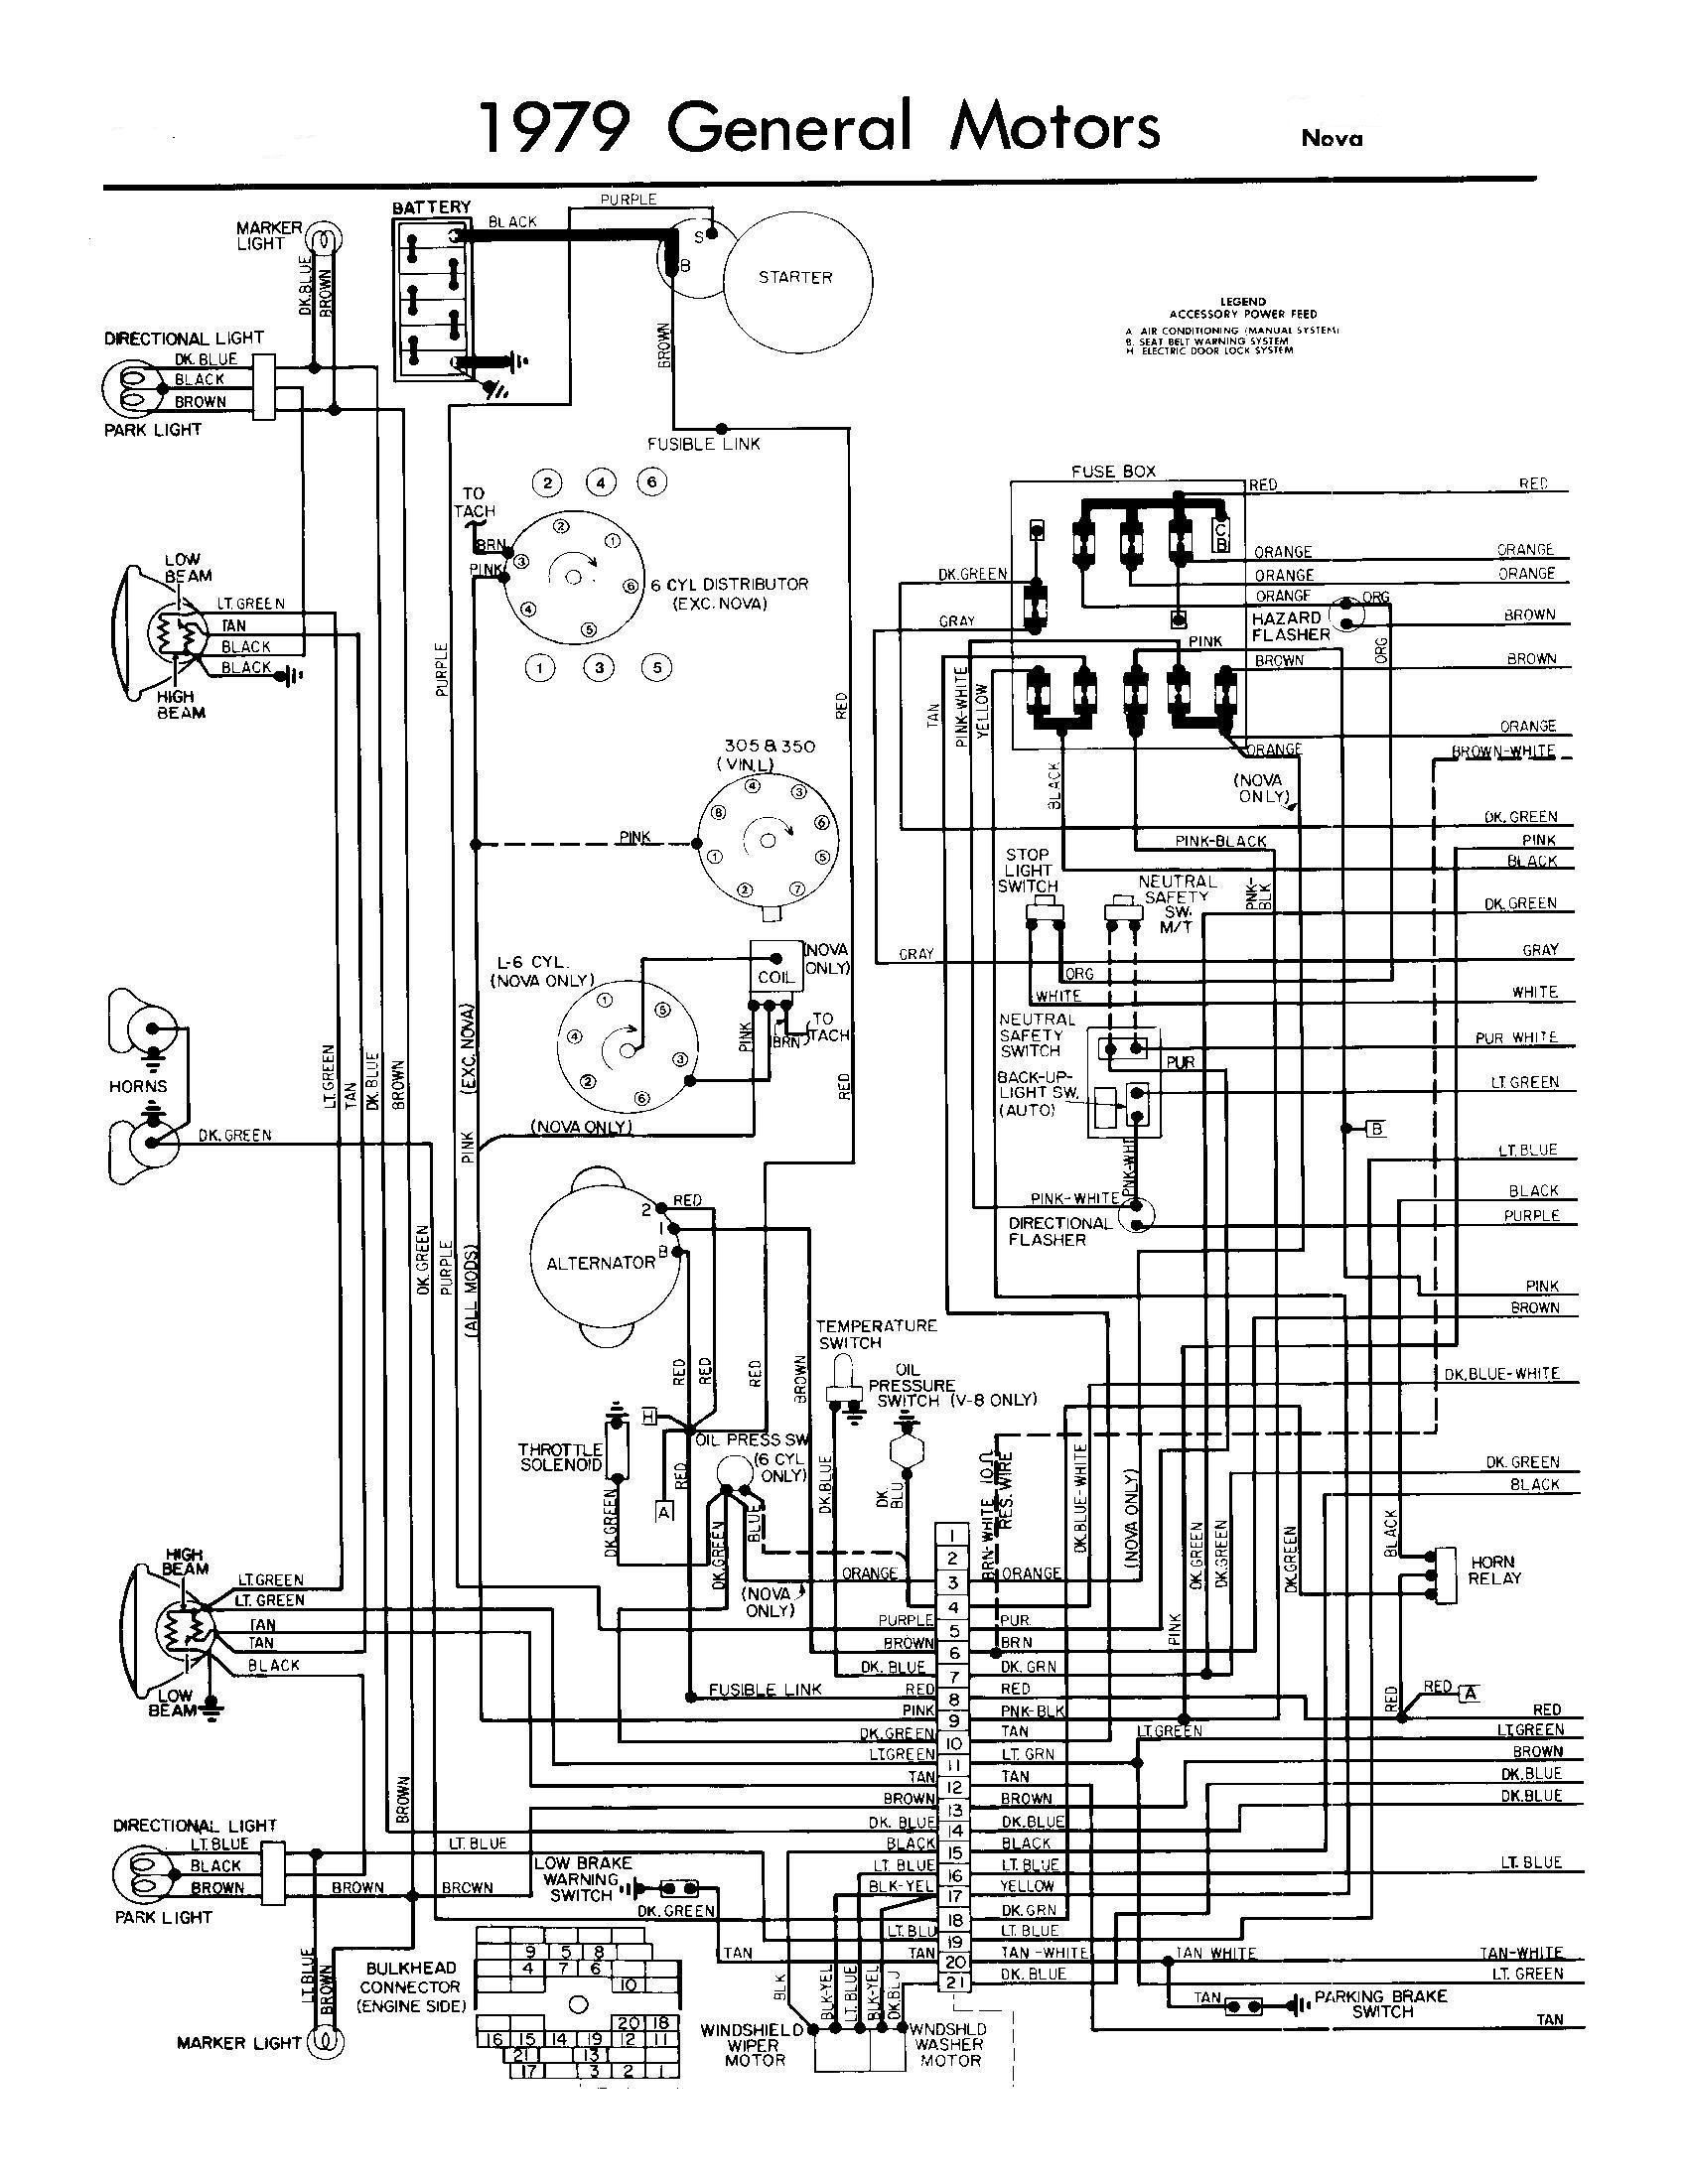 87 Chevy Truck Frame Diagram Wiring Schematic - Trusted Wiring Diagram •